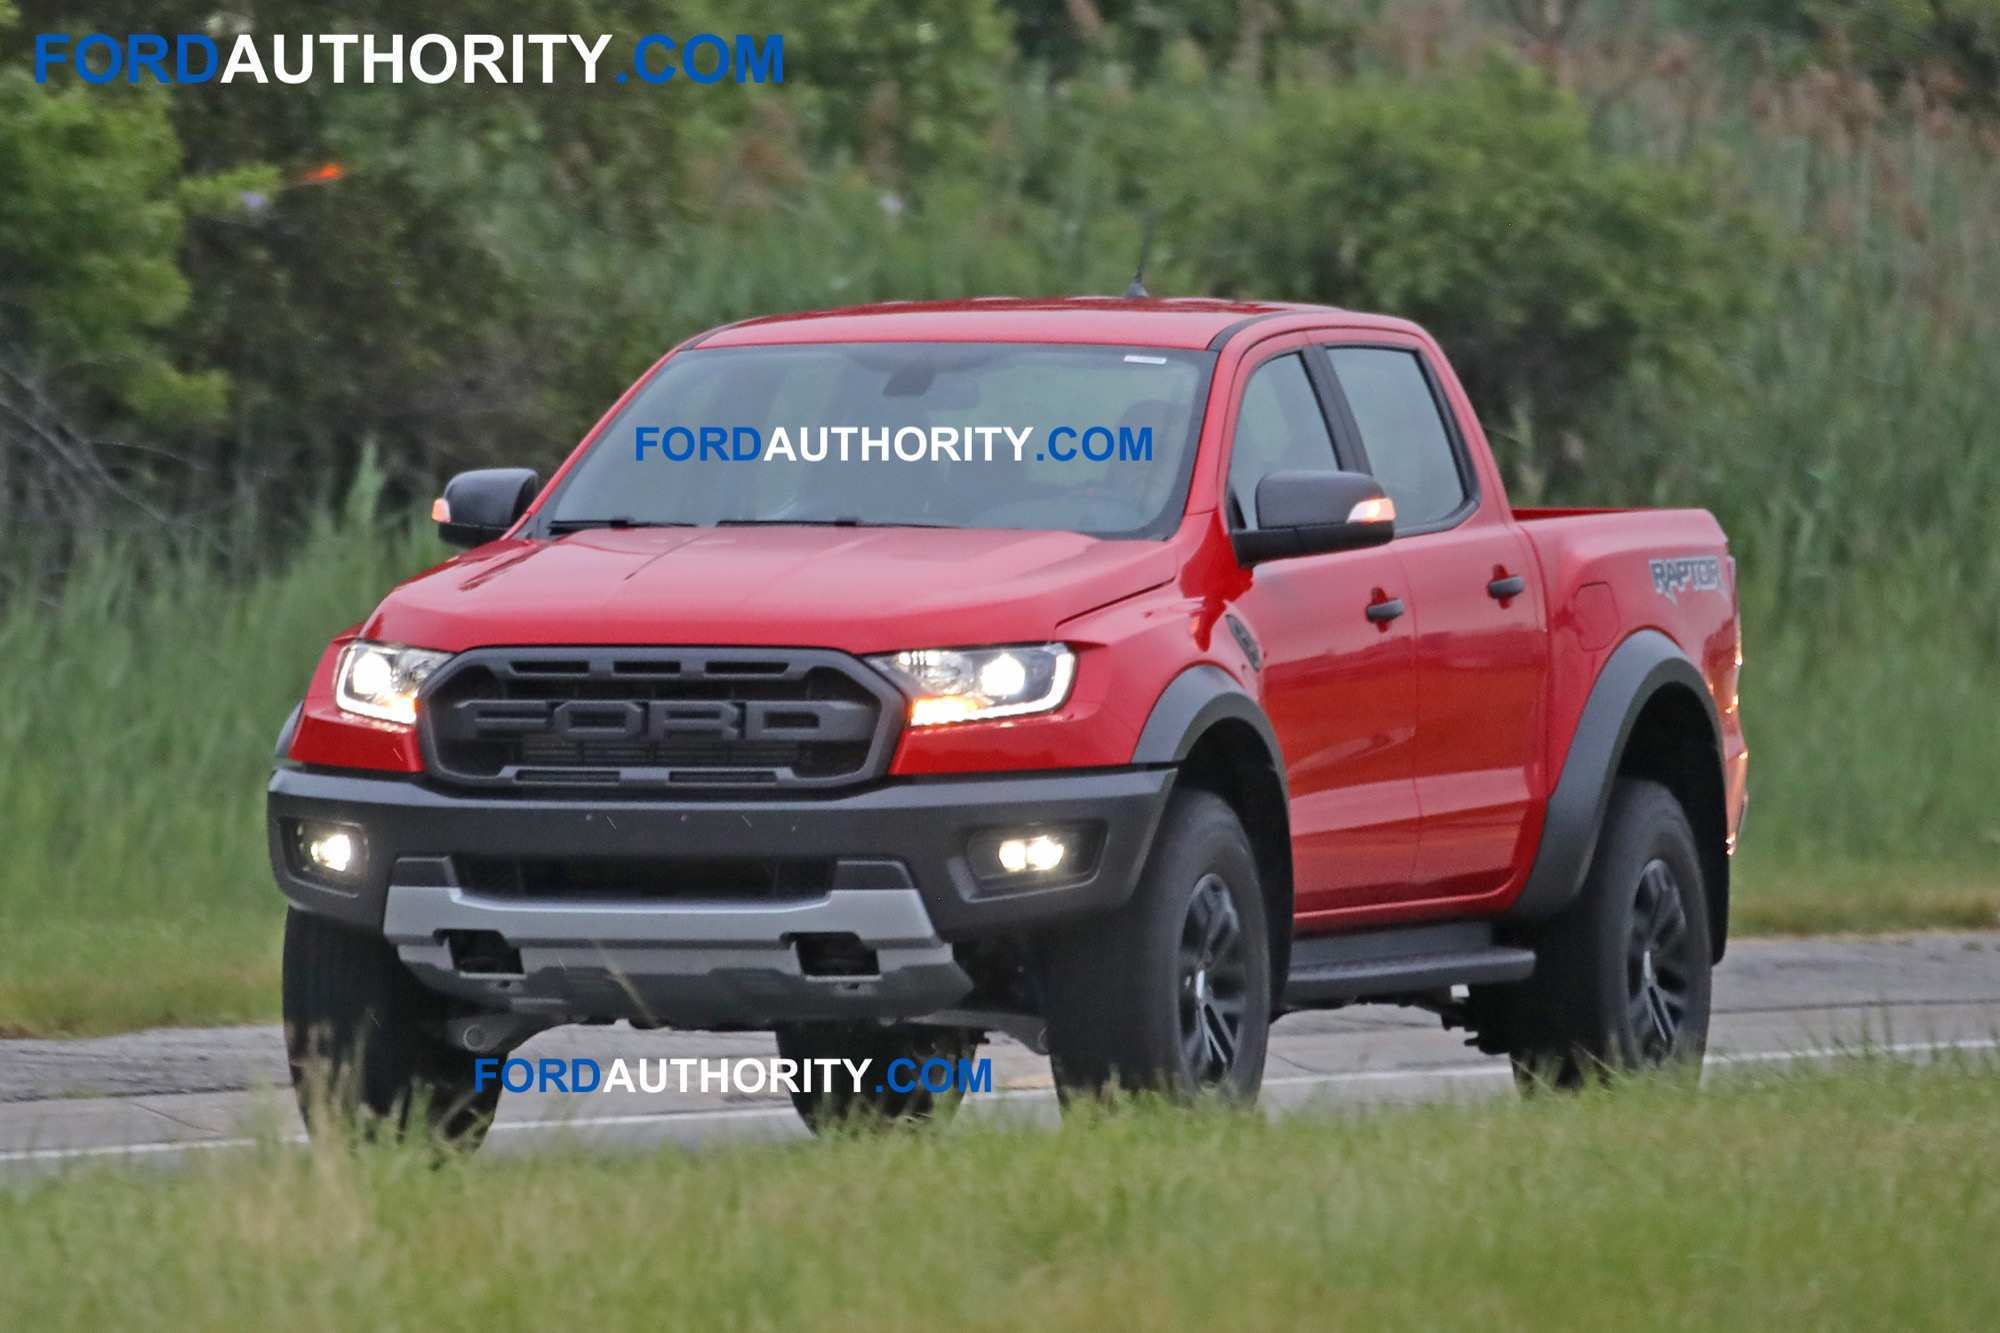 83 All New 2019 Ford Ranger 2 Door Redesign and Concept with 2019 Ford Ranger 2 Door